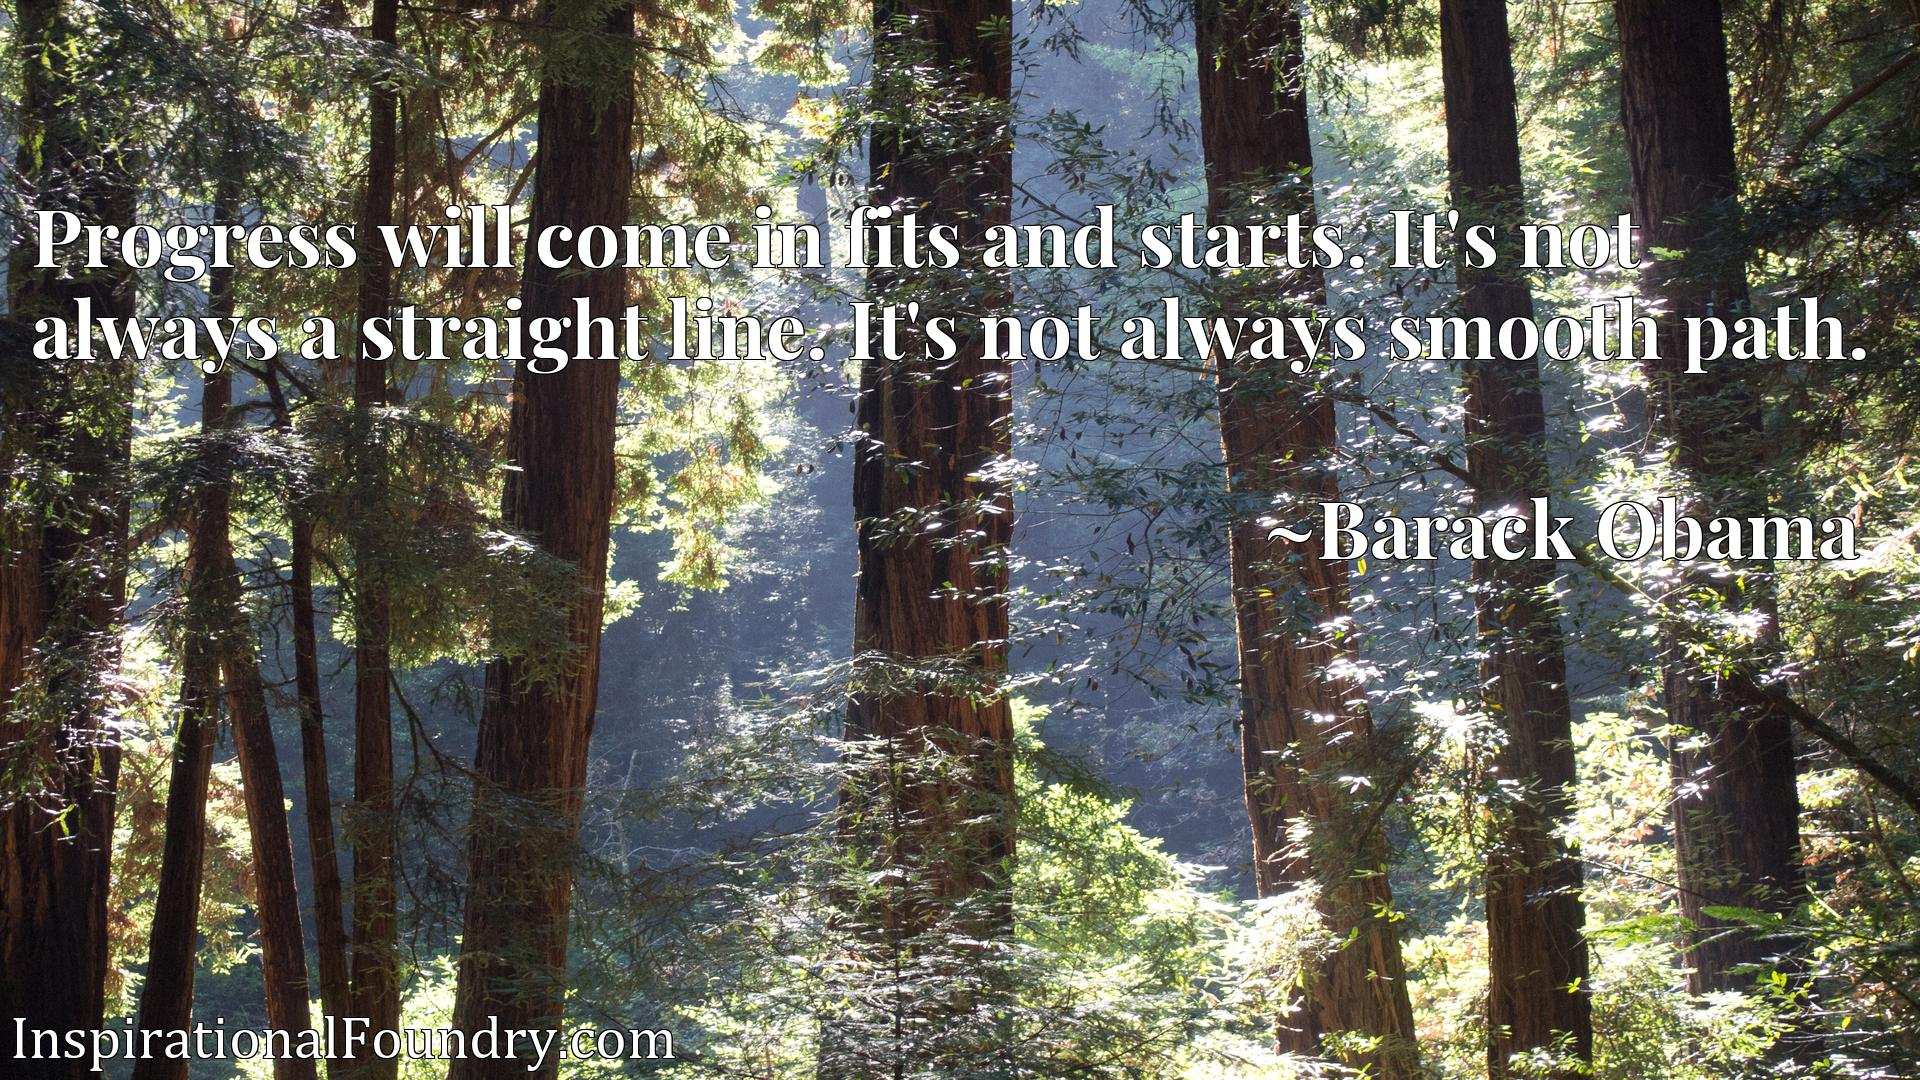 Progress will come in fits and starts. It's not always a straight line. It's not always smooth path.